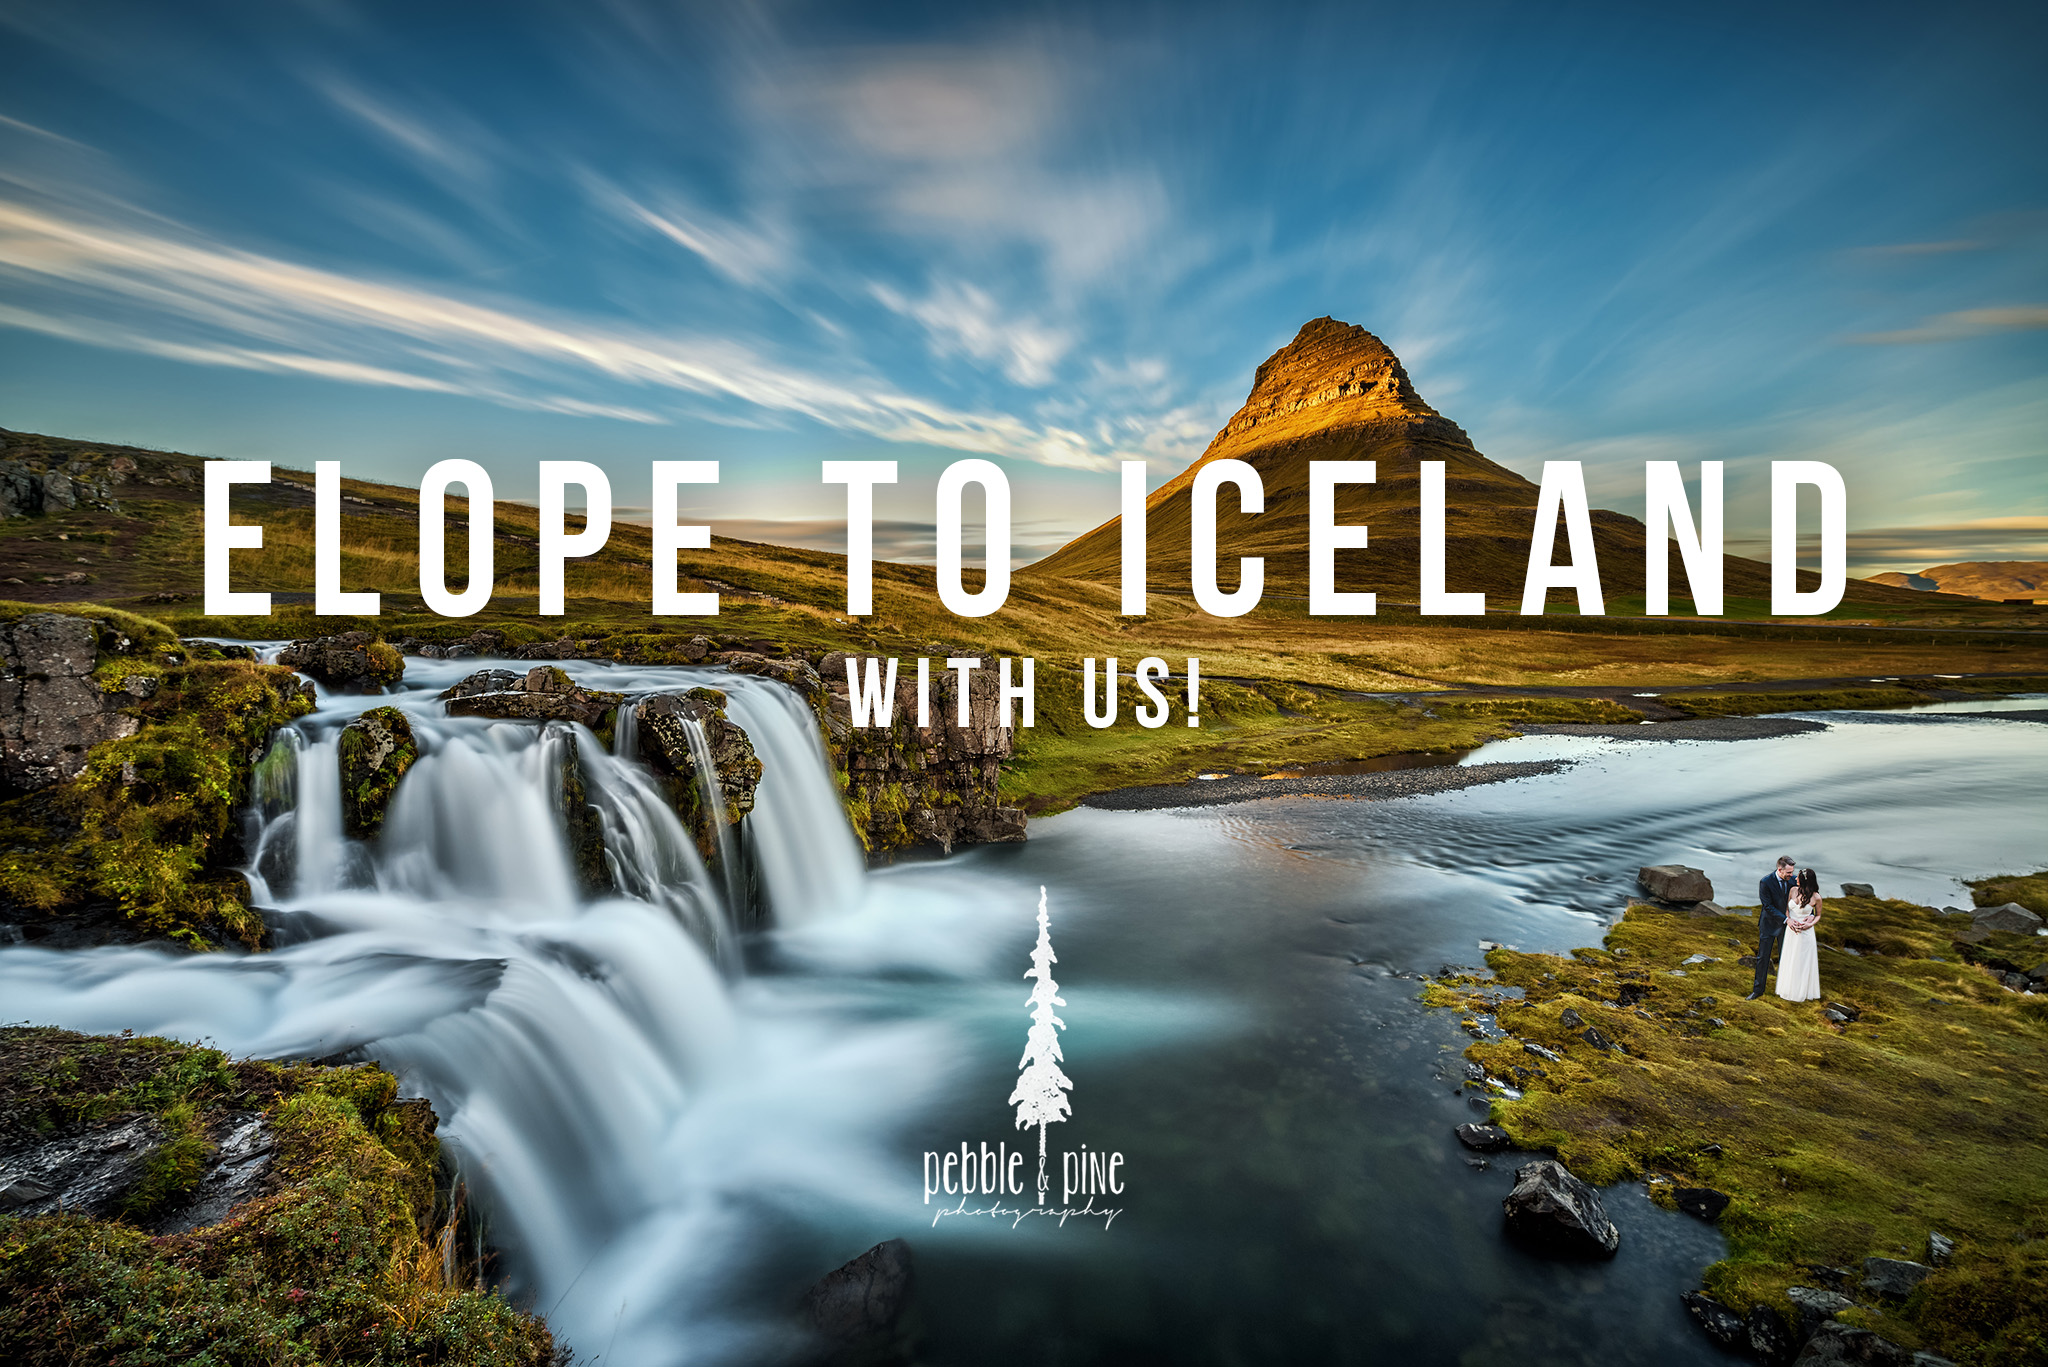 iceland-elopement-iceland-wedding-photographer-1.jpg